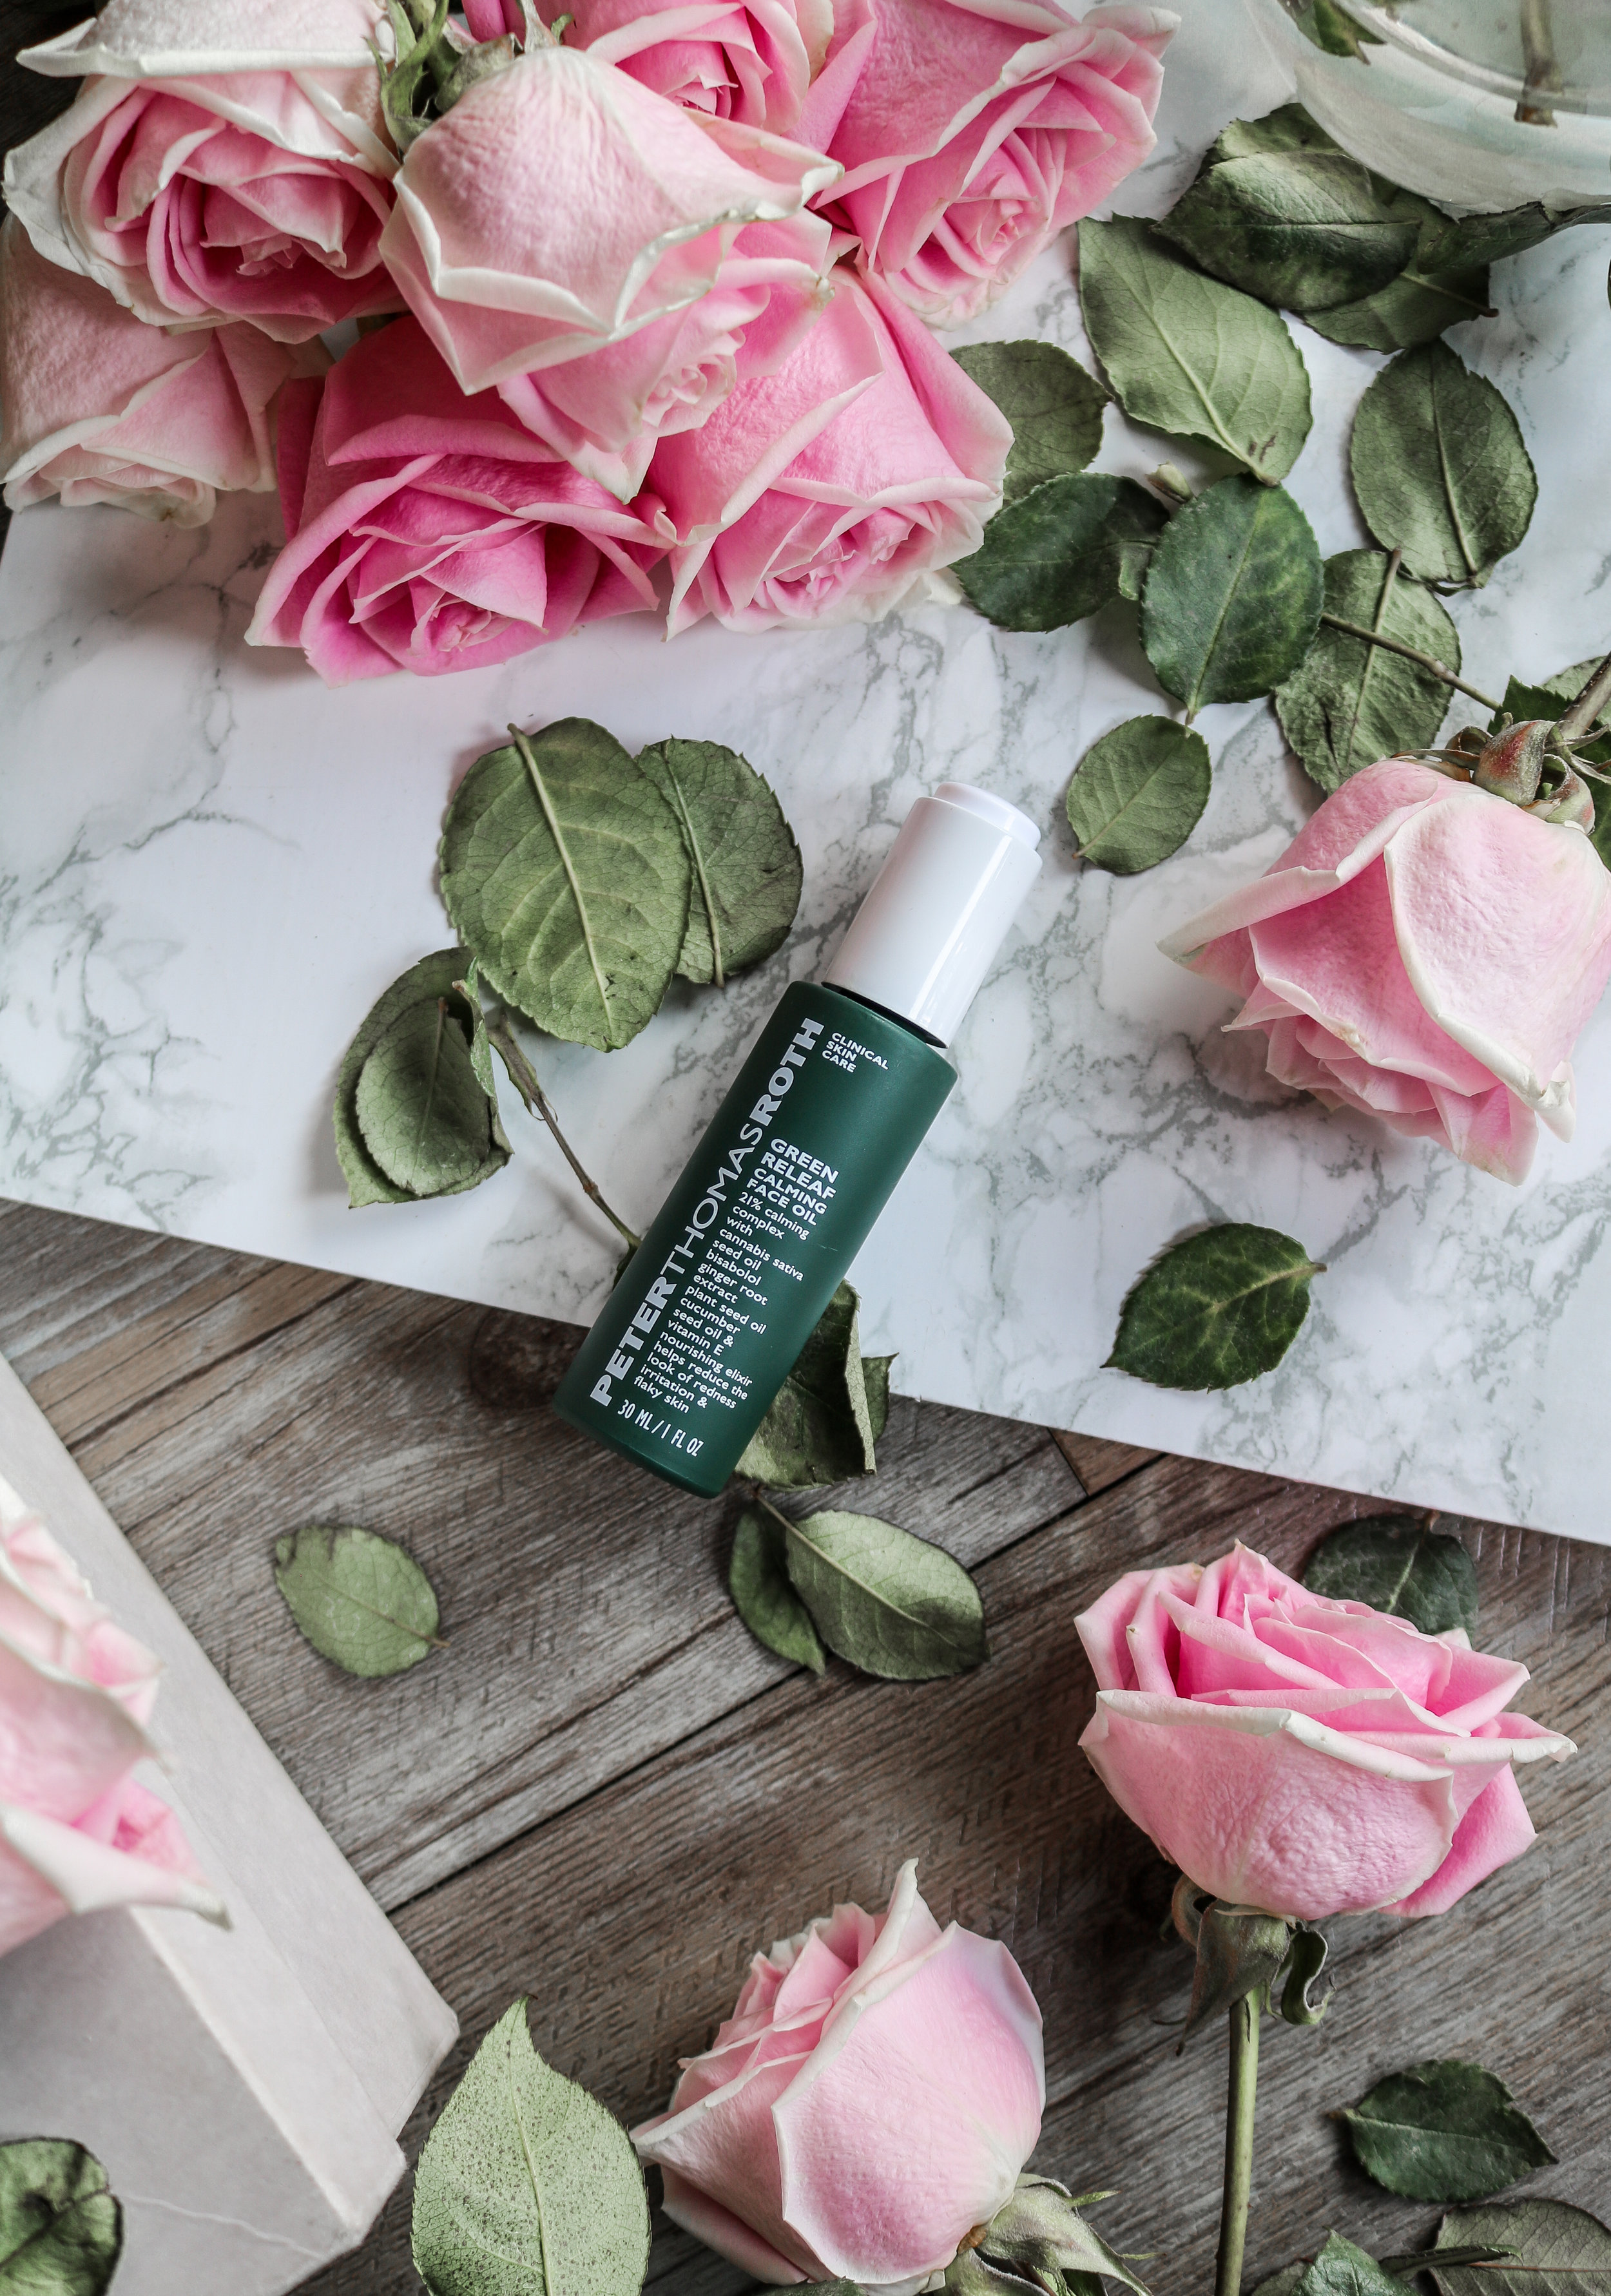 The Hungarian Brunette Peter Thomas Roth green releaf calming face oil review (cannabis sativa seed oil)